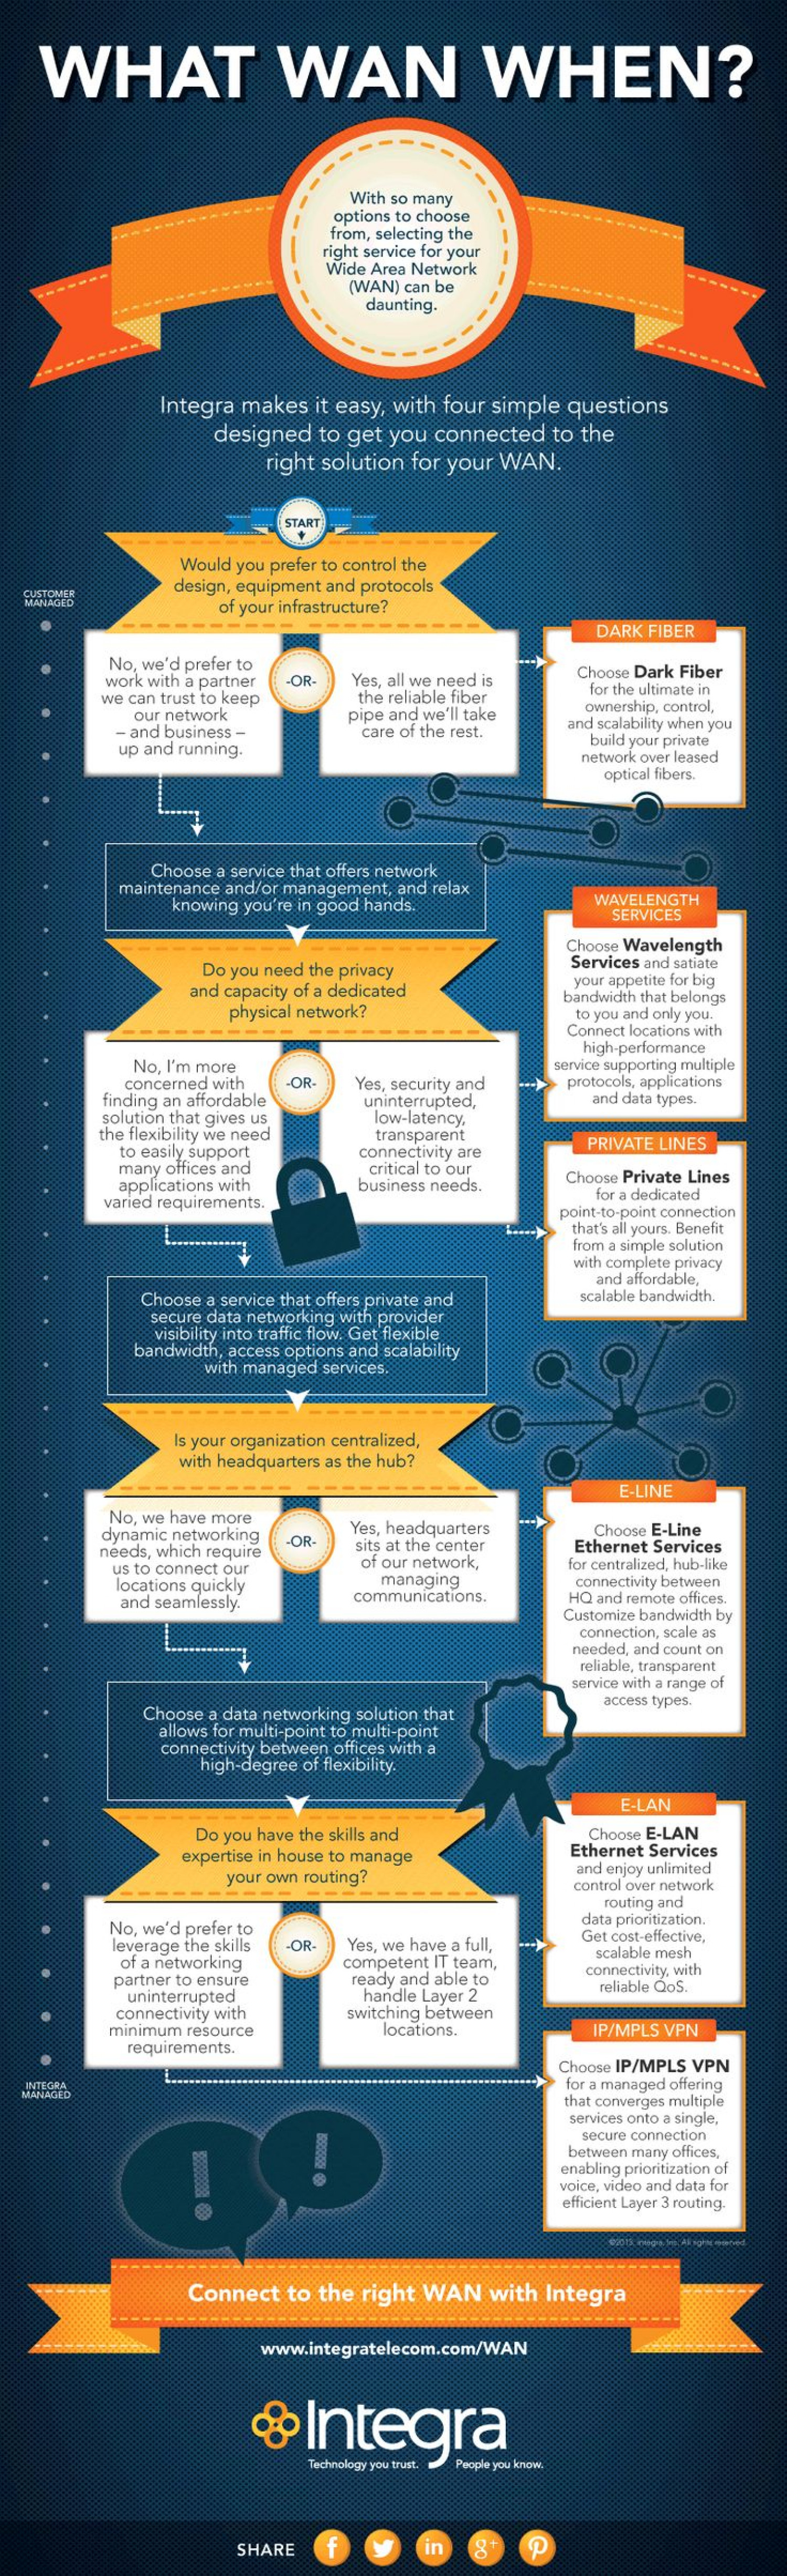 What WAN When? Infographic